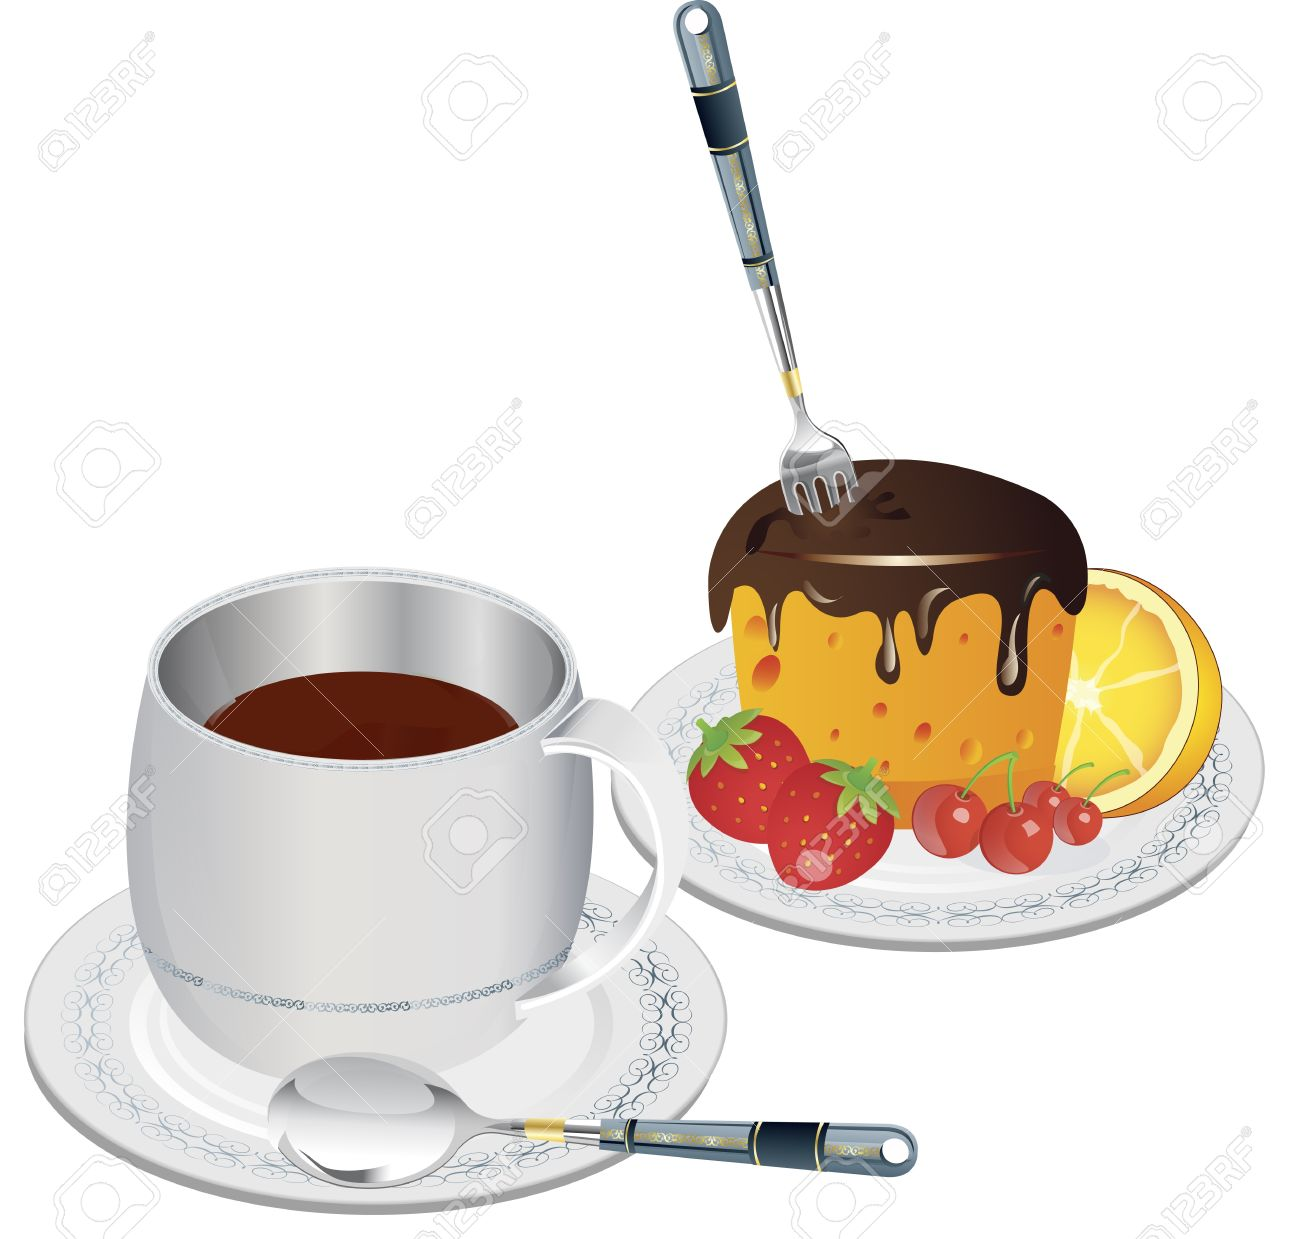 Clip art image of a cup of coffee and slice of fruit cake Stock Photo - 15616860